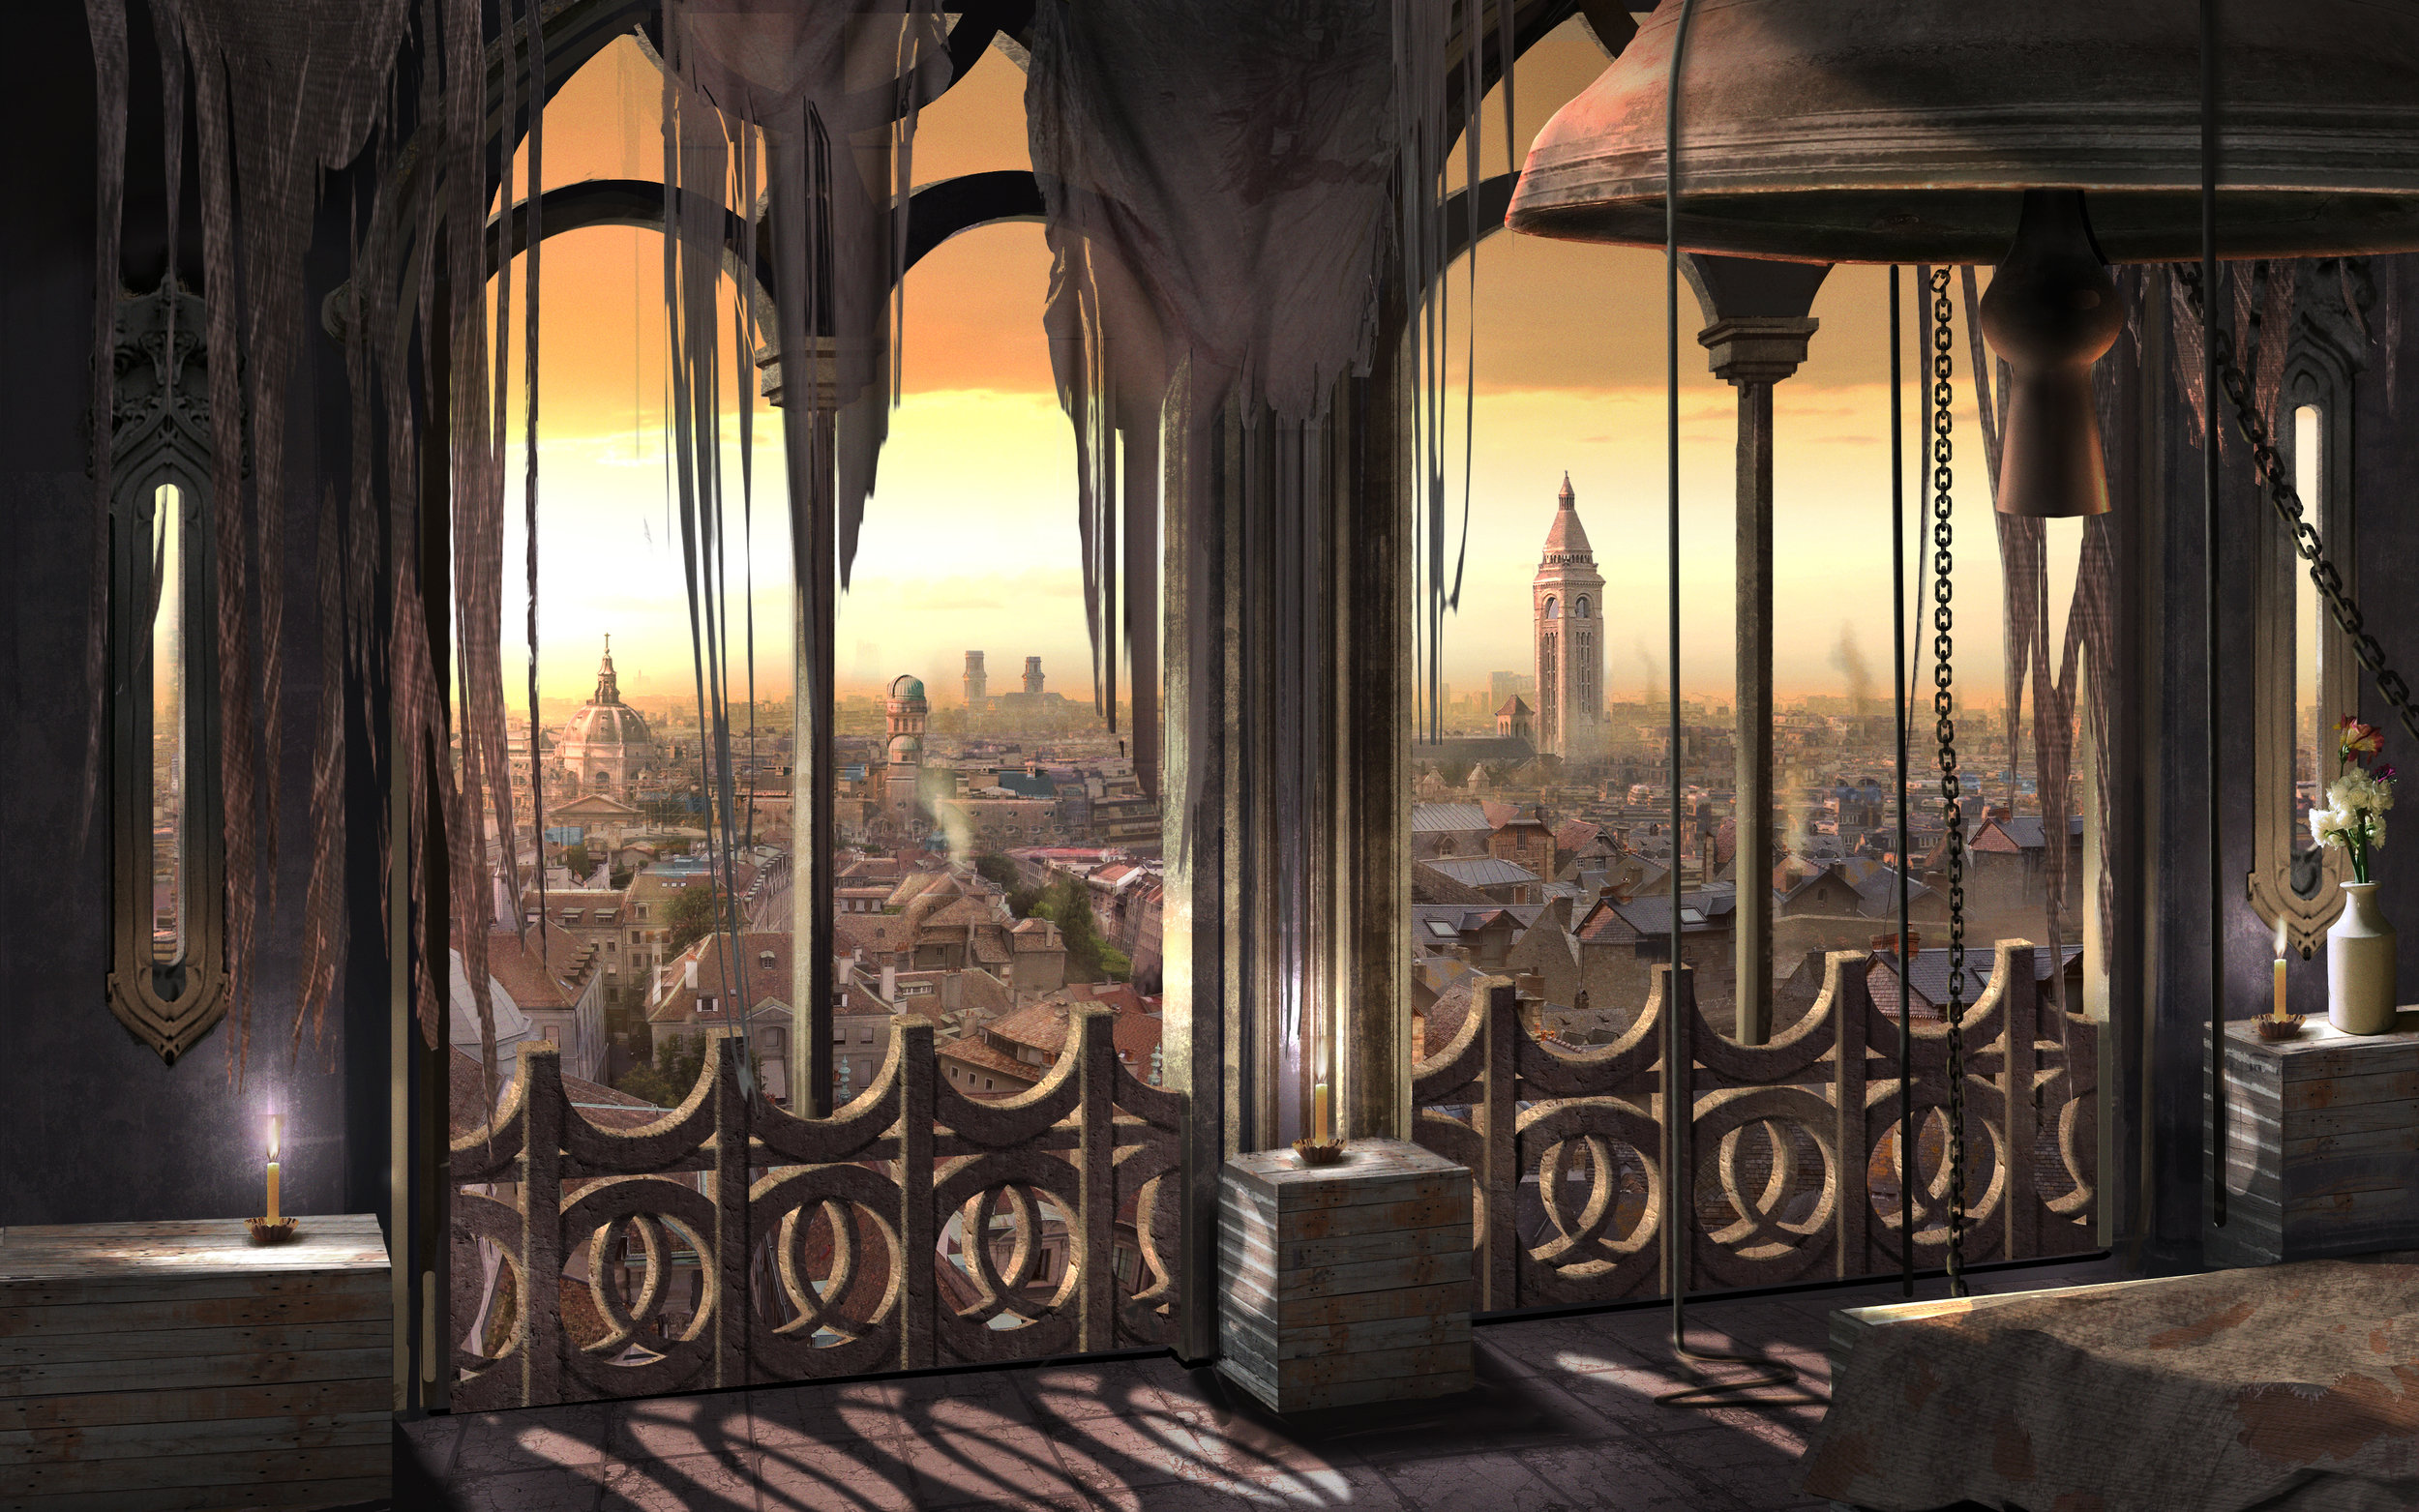 """Quasimodo's """"Sanctuary"""" in the Bell Tower of Notre Dame overlooking the city of Paris."""